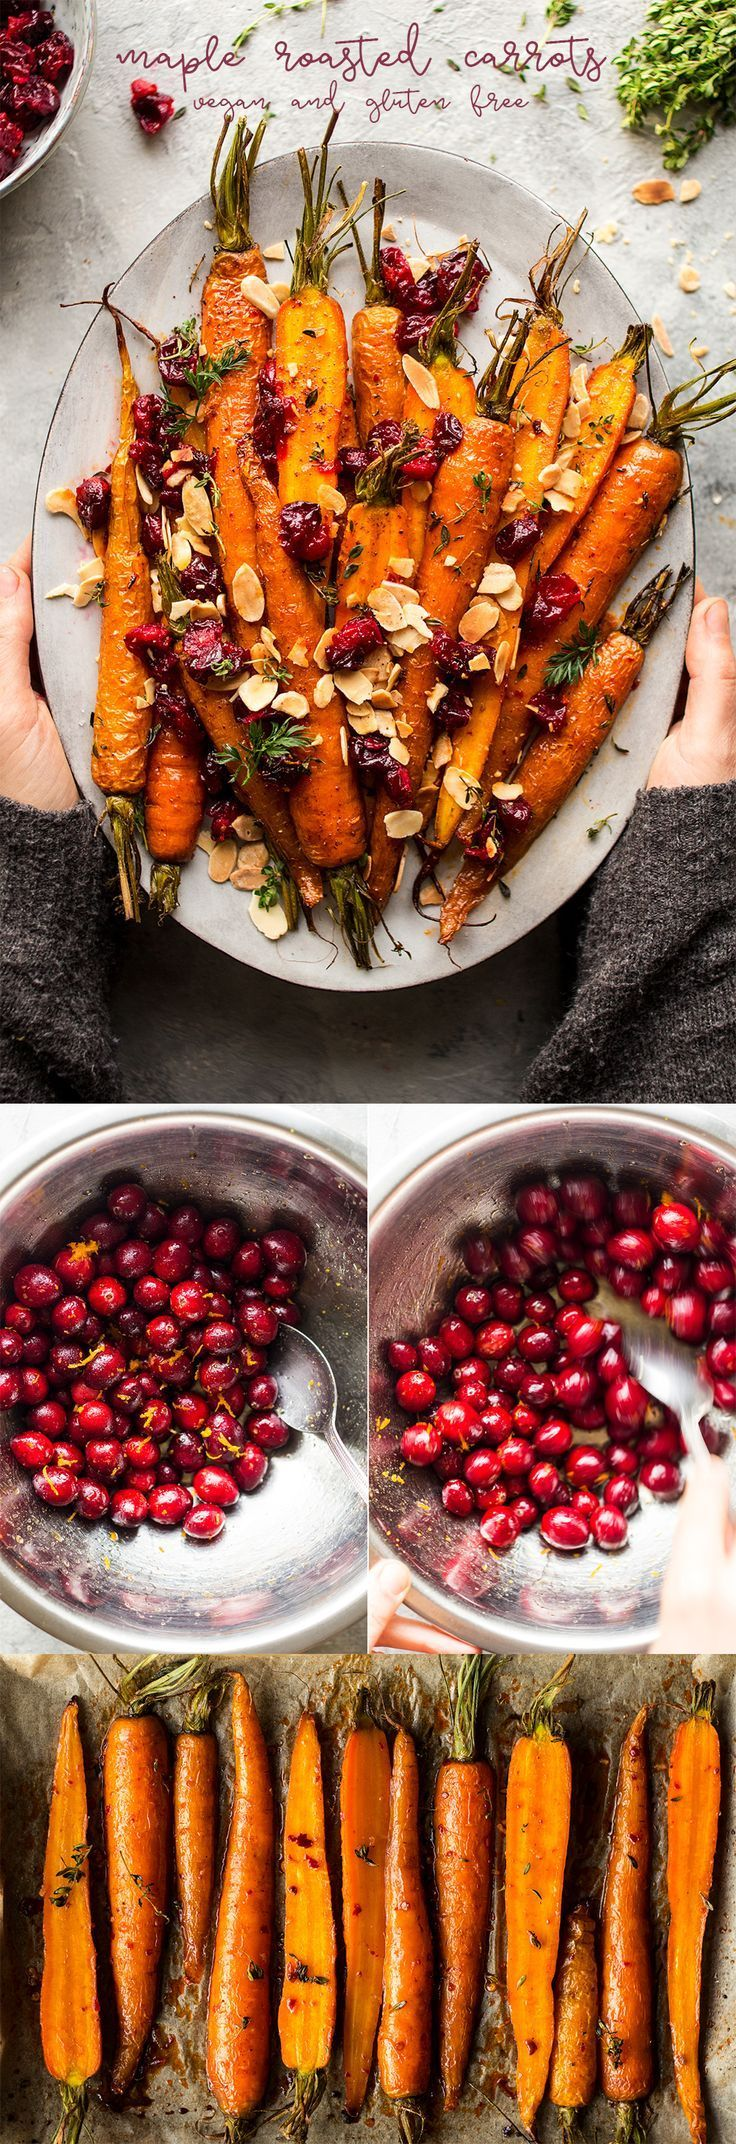 Maple roasted carrots with cranberries - Lazy Cat Kitchen